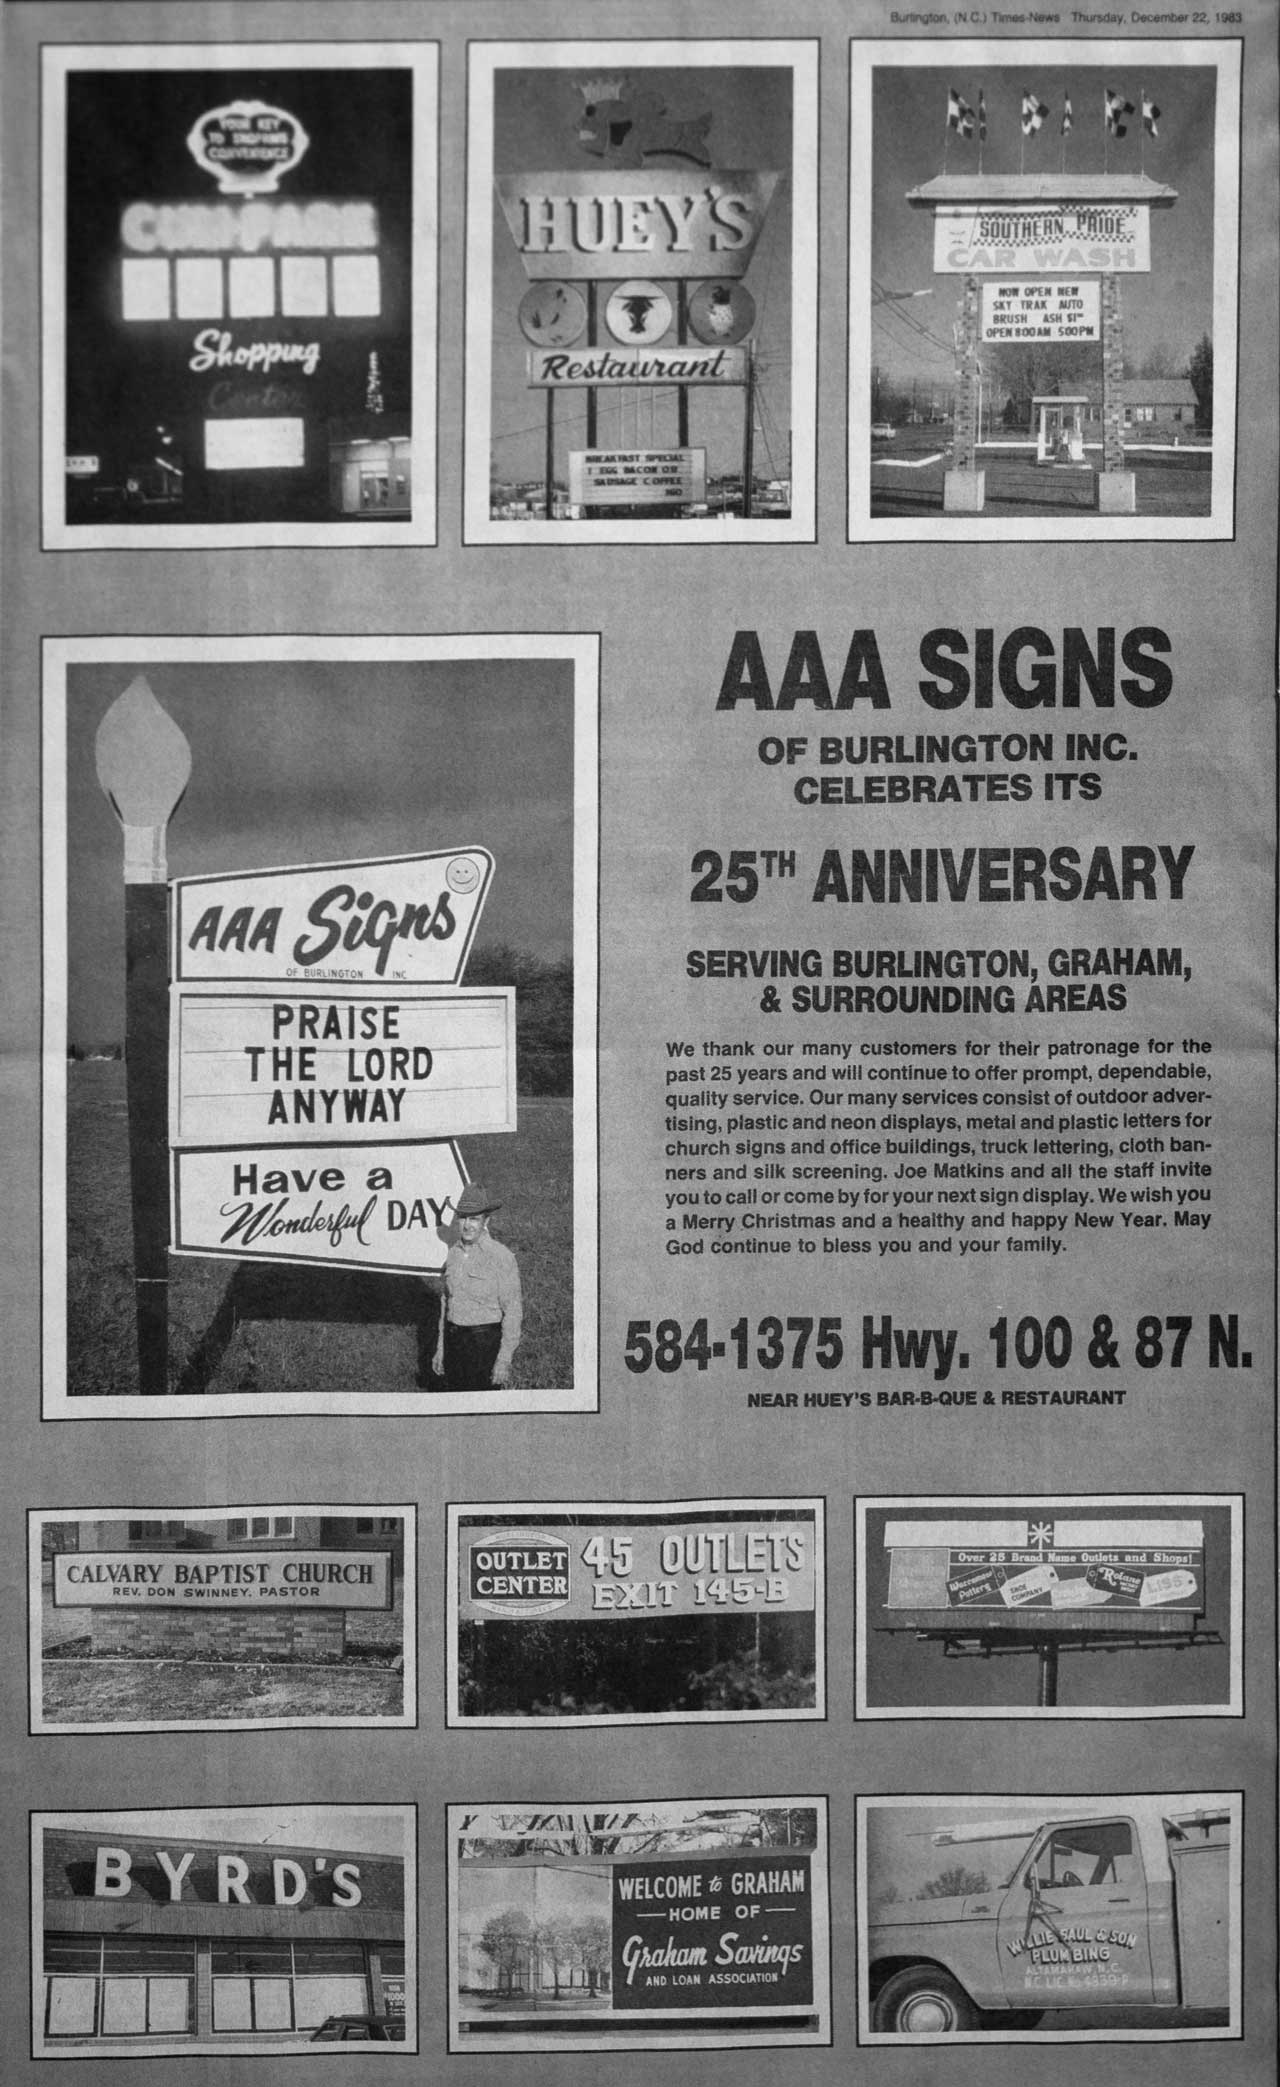 AAA Signs 25th Anniversary Newsclipping